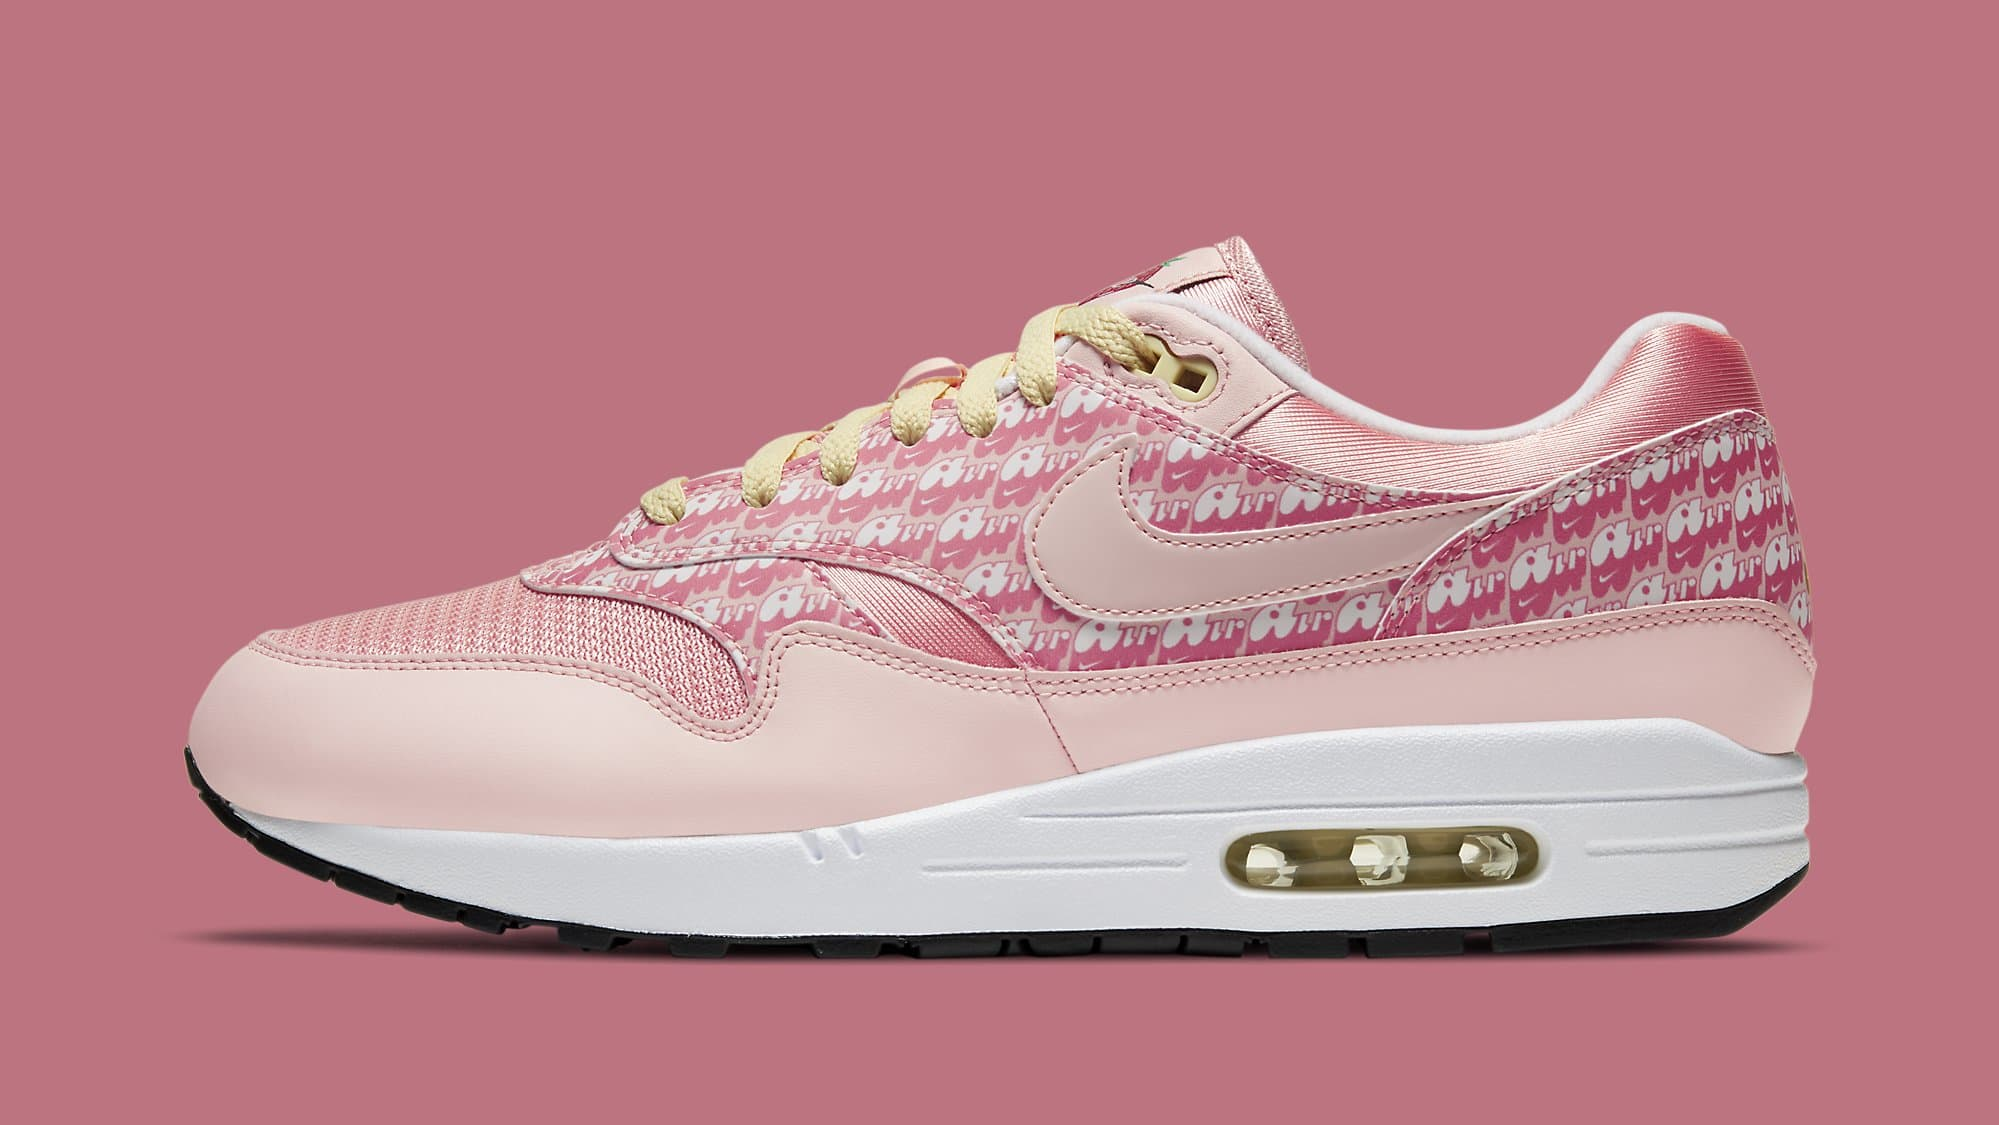 Nike Air Max 1 'Strawberry Lemonade' CJ0609-600 Lateral